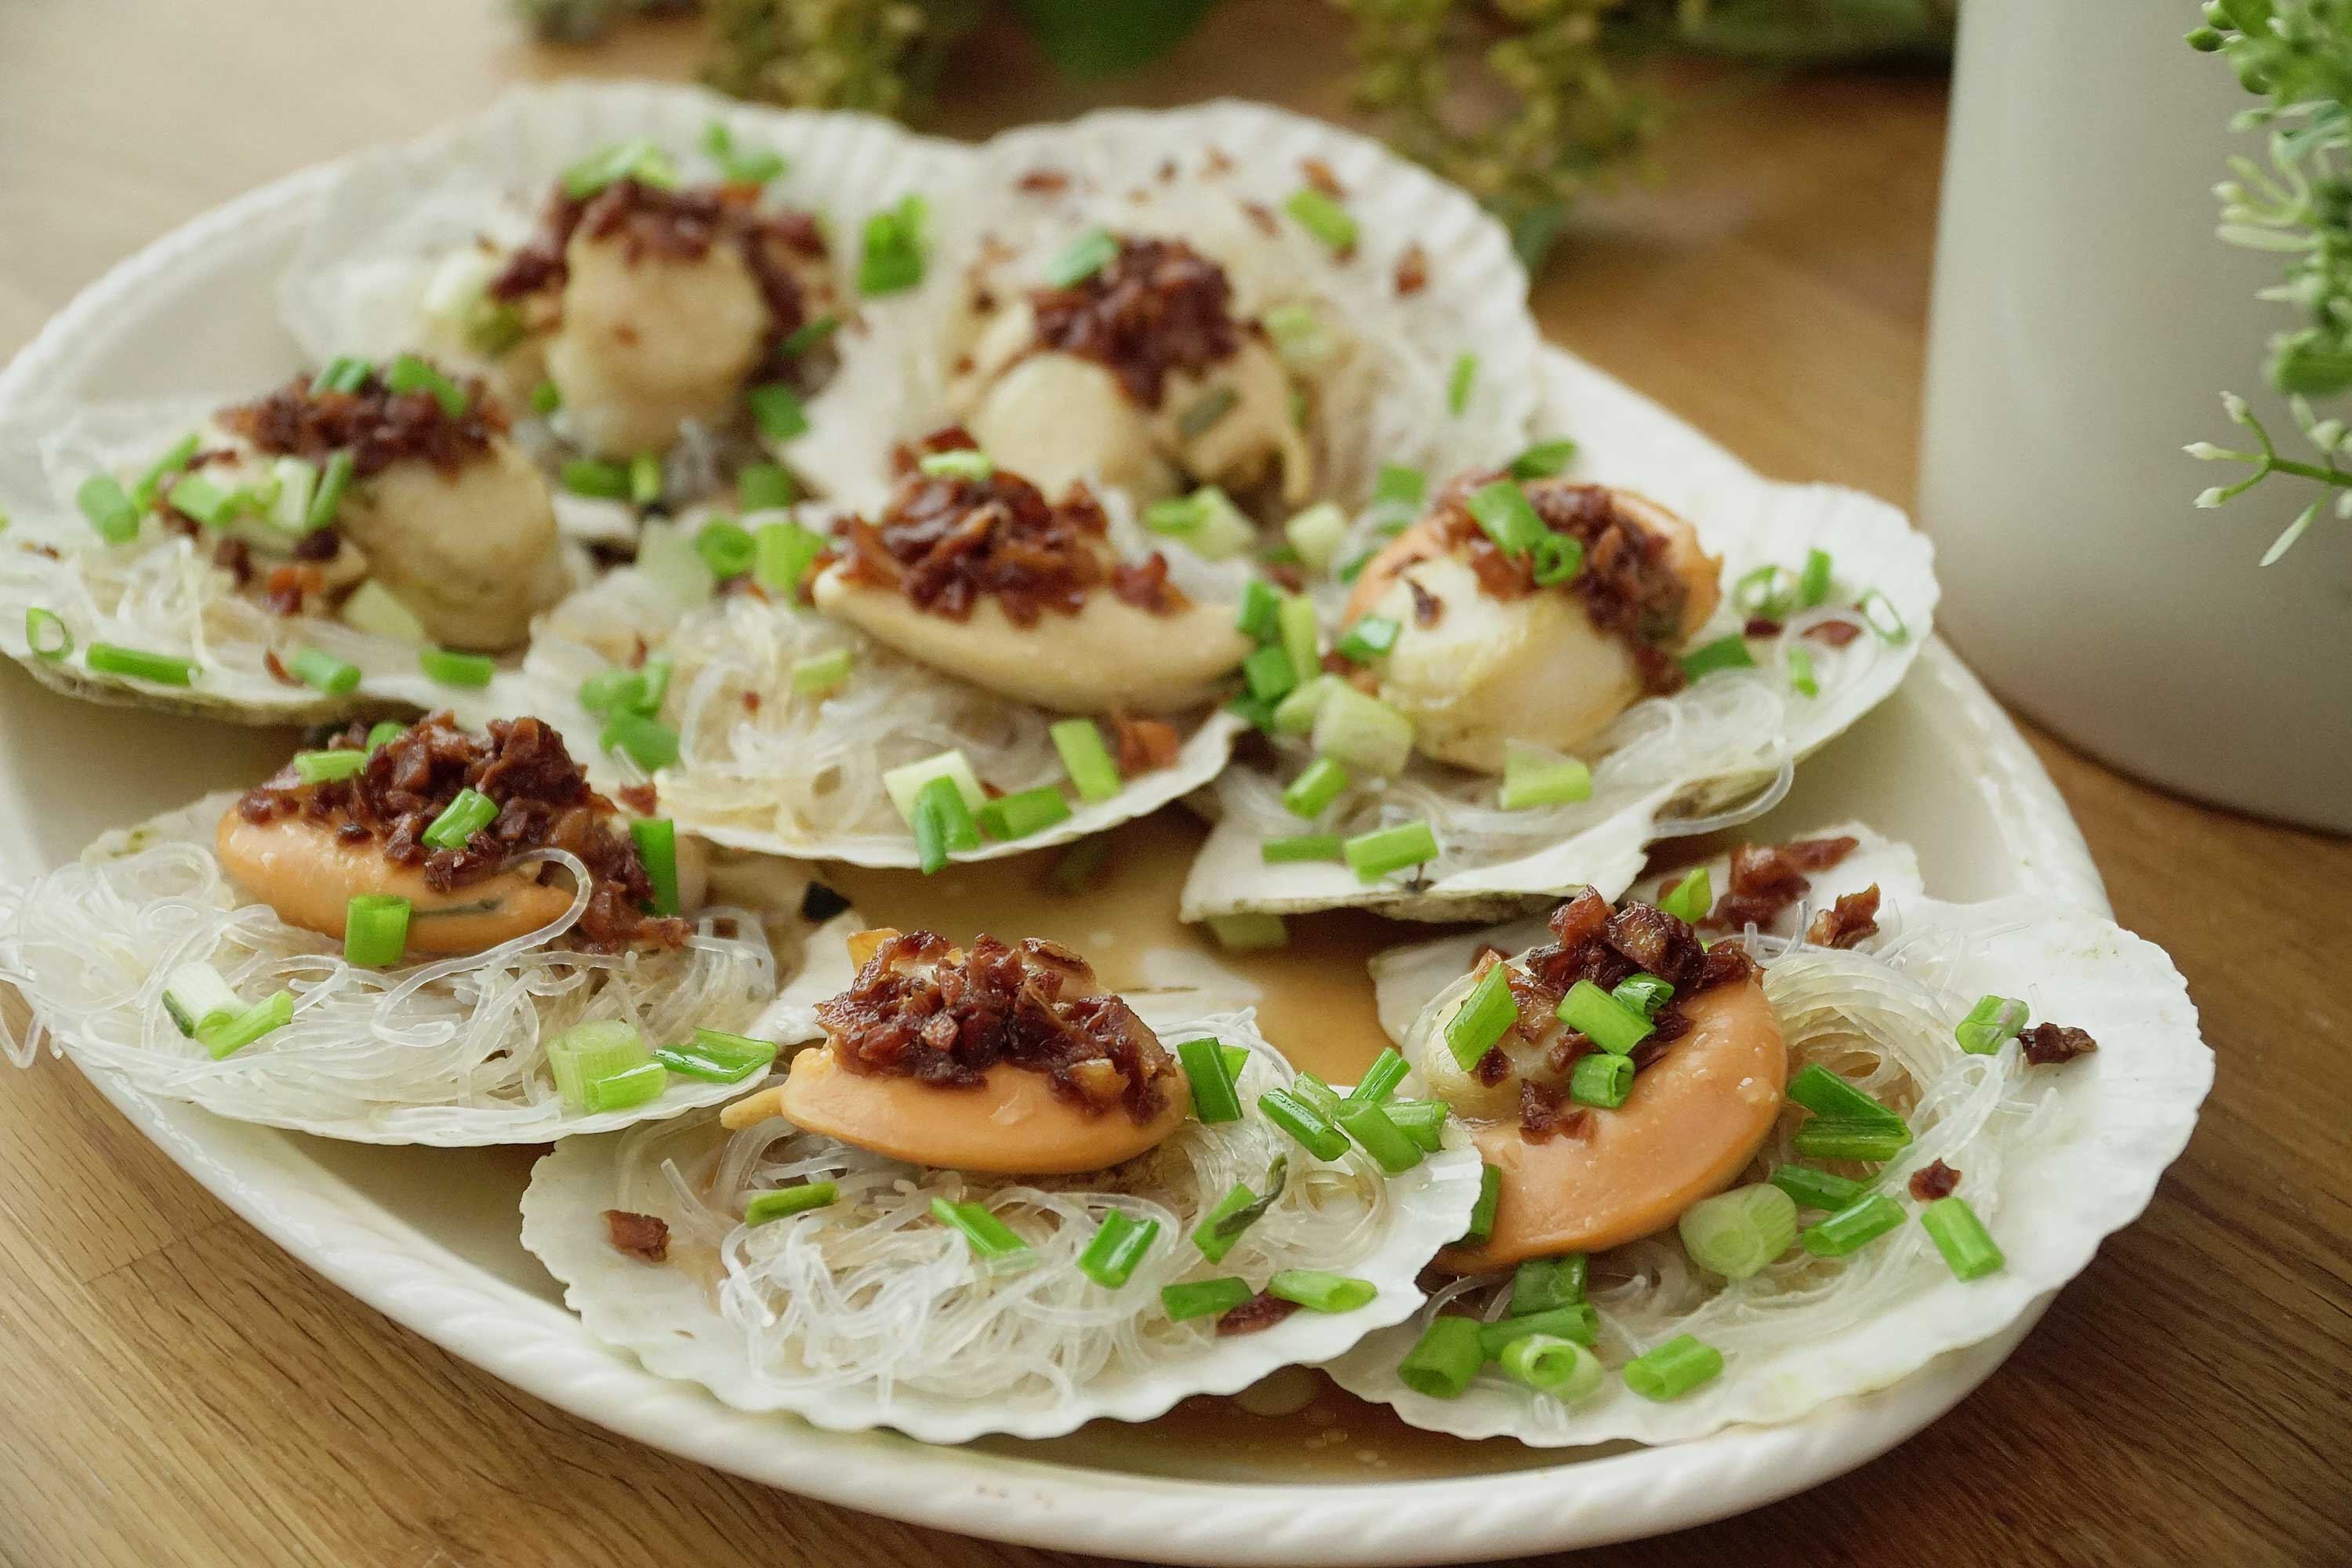 Steamed Scallops with Glass Noodles - 蒜蓉冬粉蒸带子